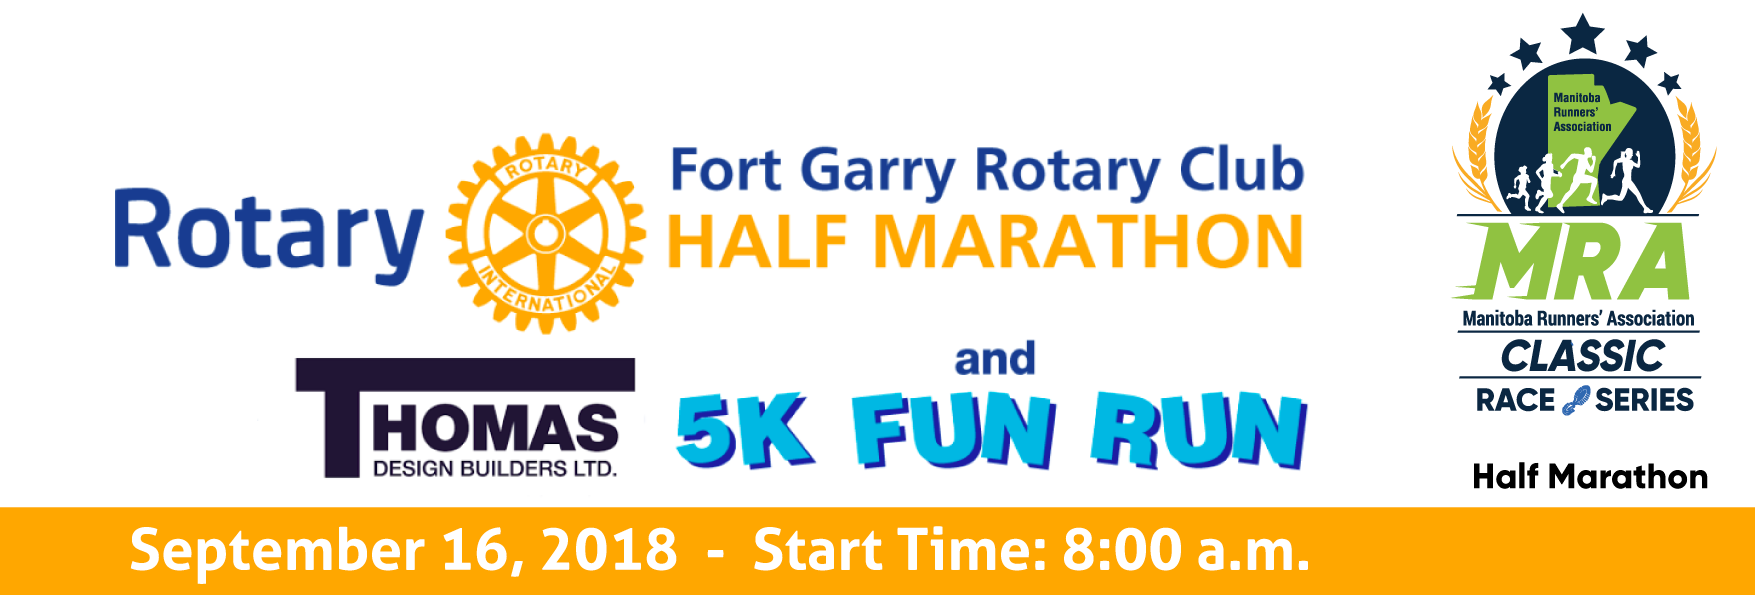 http://mraweb.ca/events/fort-garry-rotary-half-marathon-5k-fun-run/